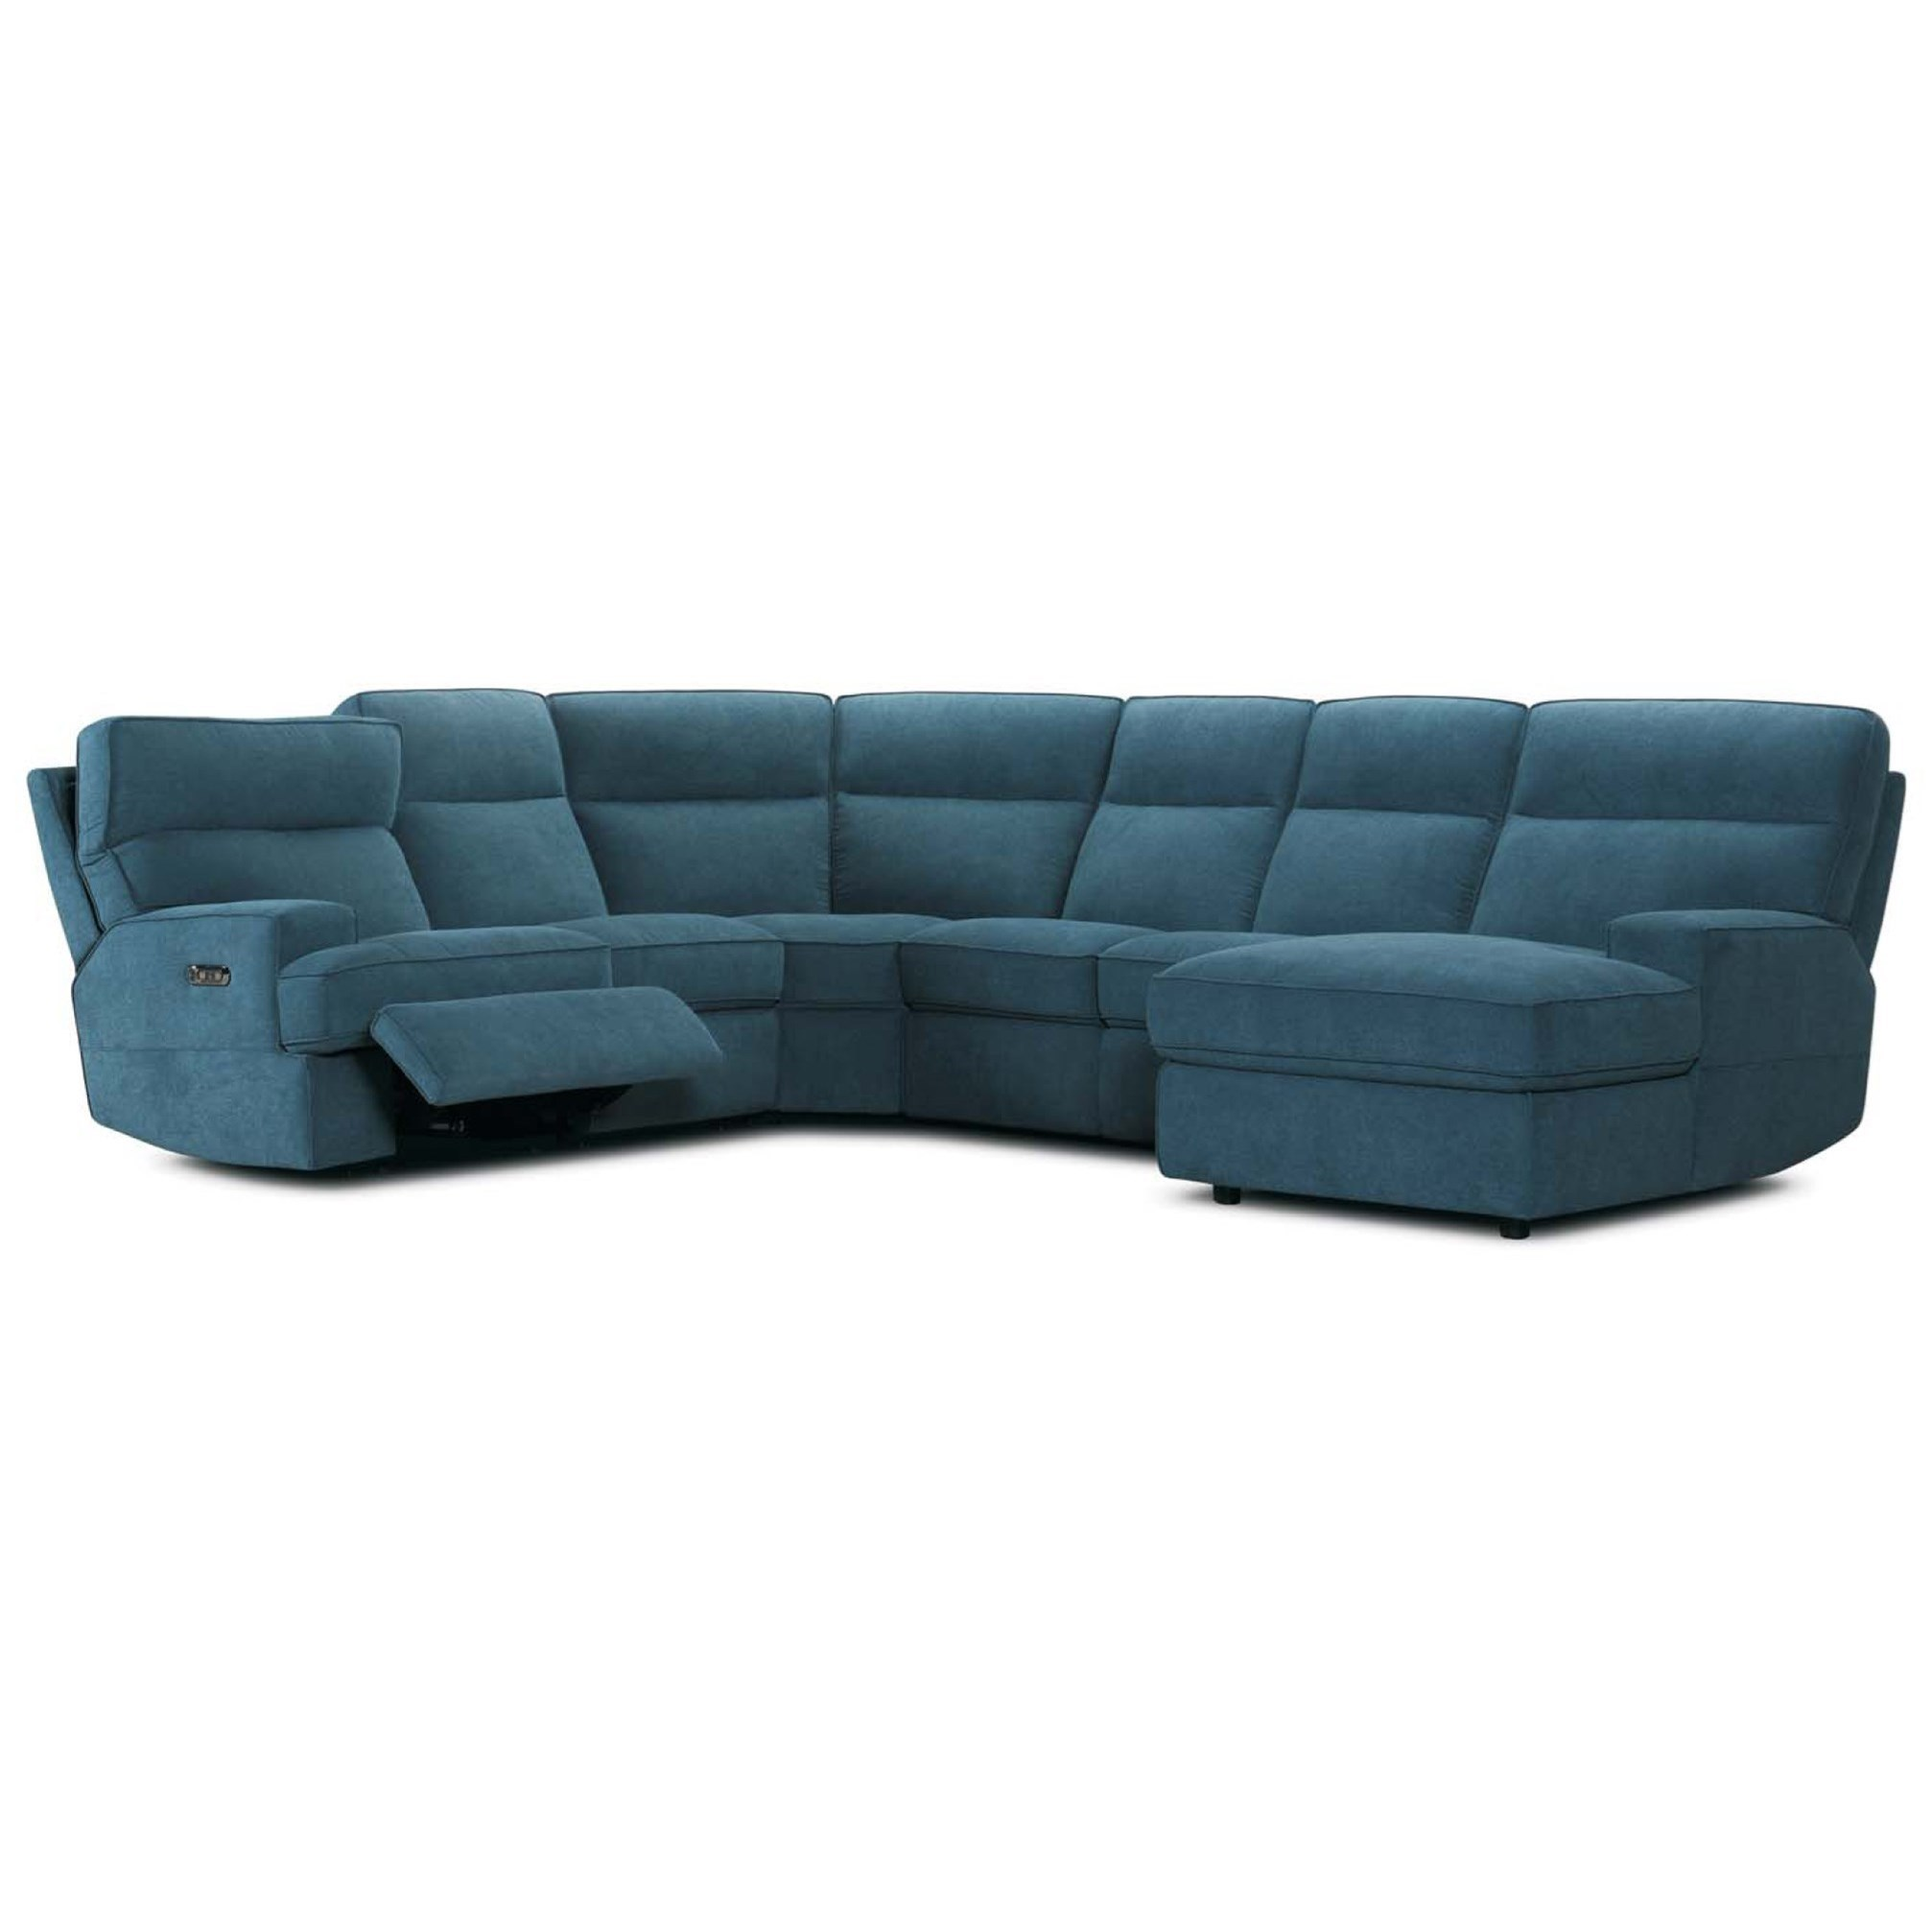 32146 6 Pc Reclining Sectional Sofa by Violino at Furniture Superstore - Rochester, MN